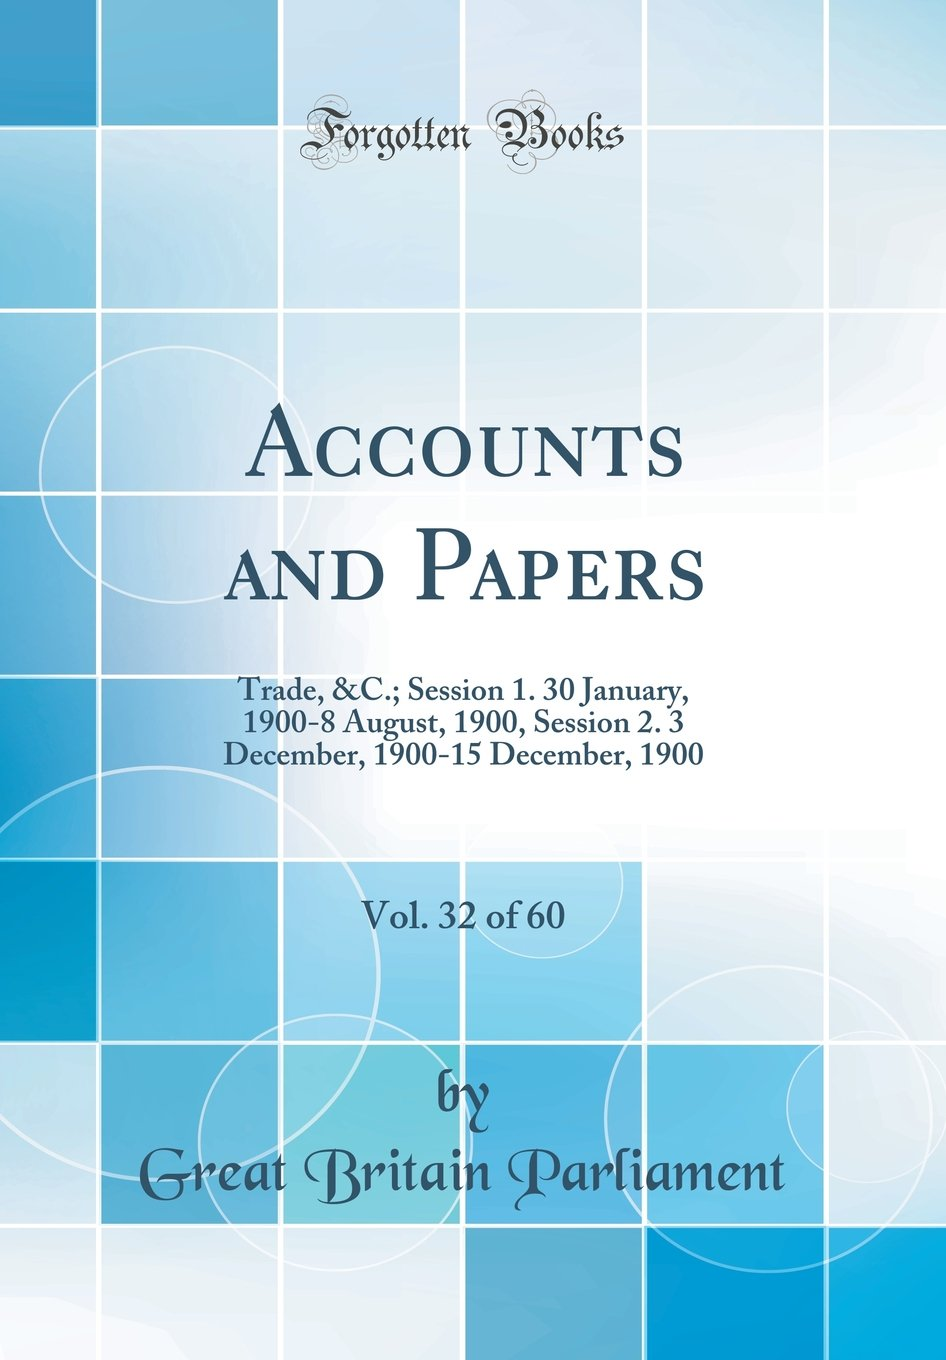 Accounts and Papers, Vol. 32 of 60: Trade, &C.; Session 1. 30 January, 1900-8 August, 1900, Session 2. 3 December, 1900-15 December, 1900 (Classic Reprint) pdf epub